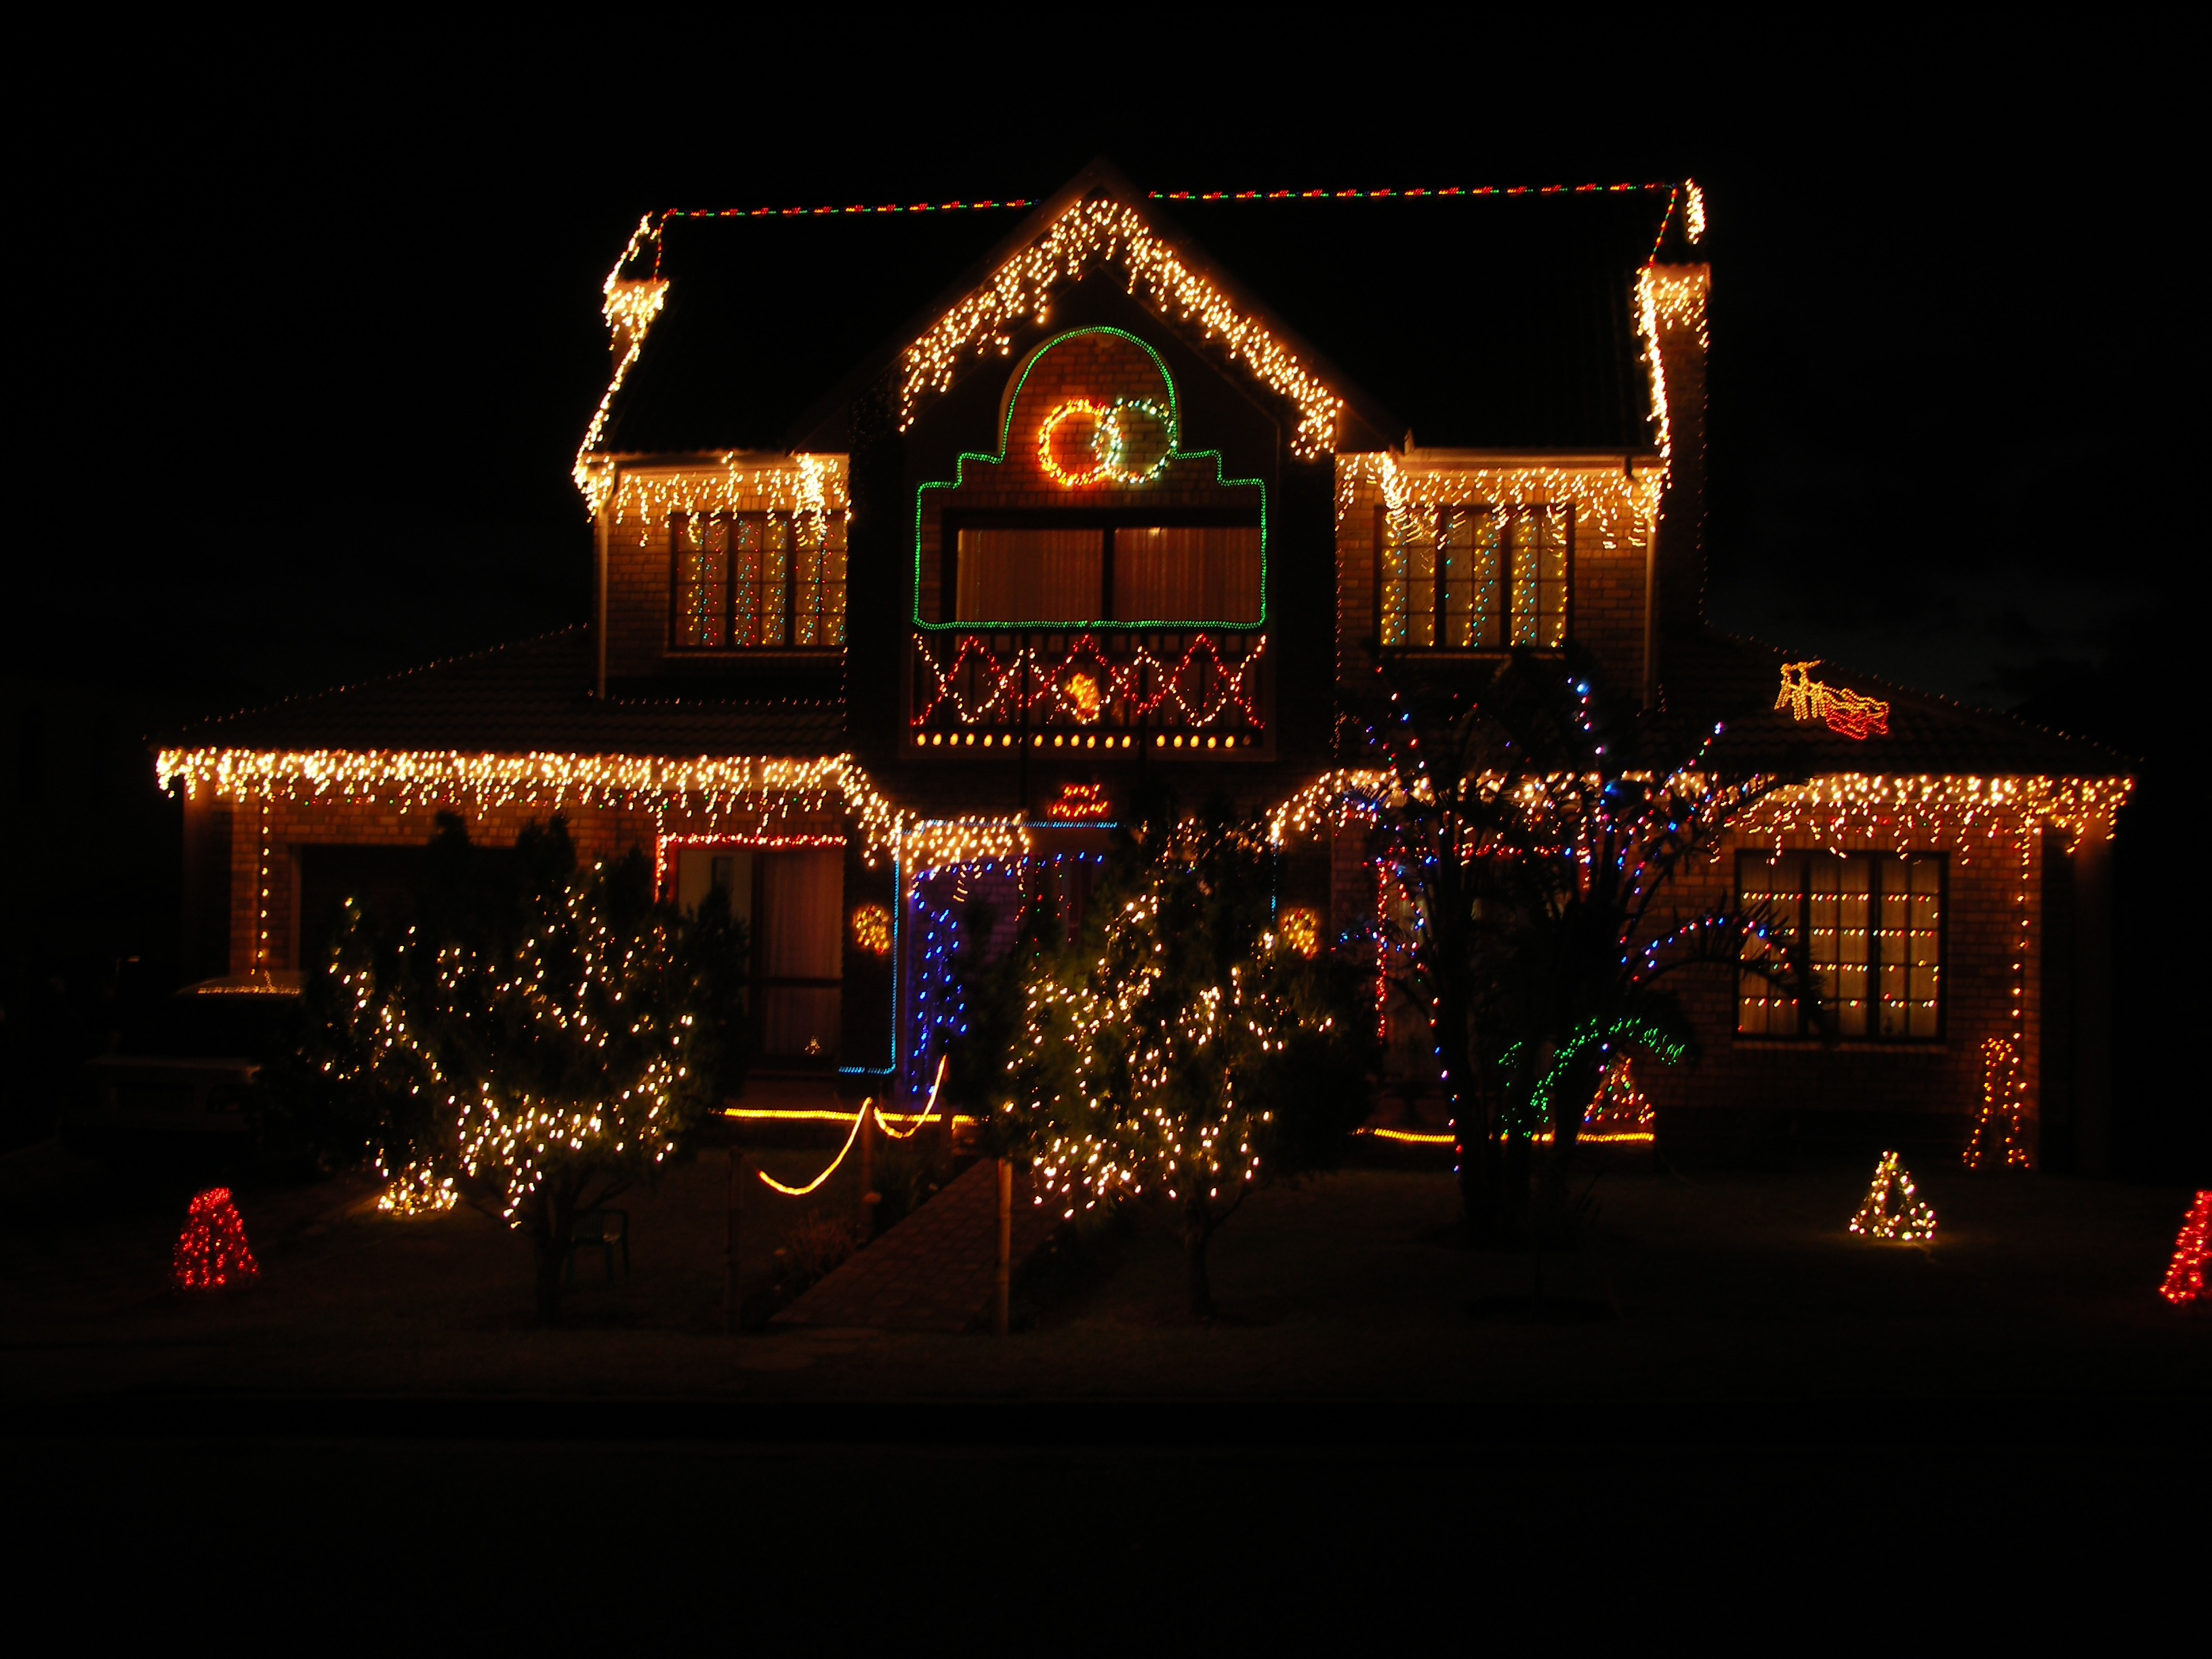 Let the Jiffy pros install your Christmas lights this year.